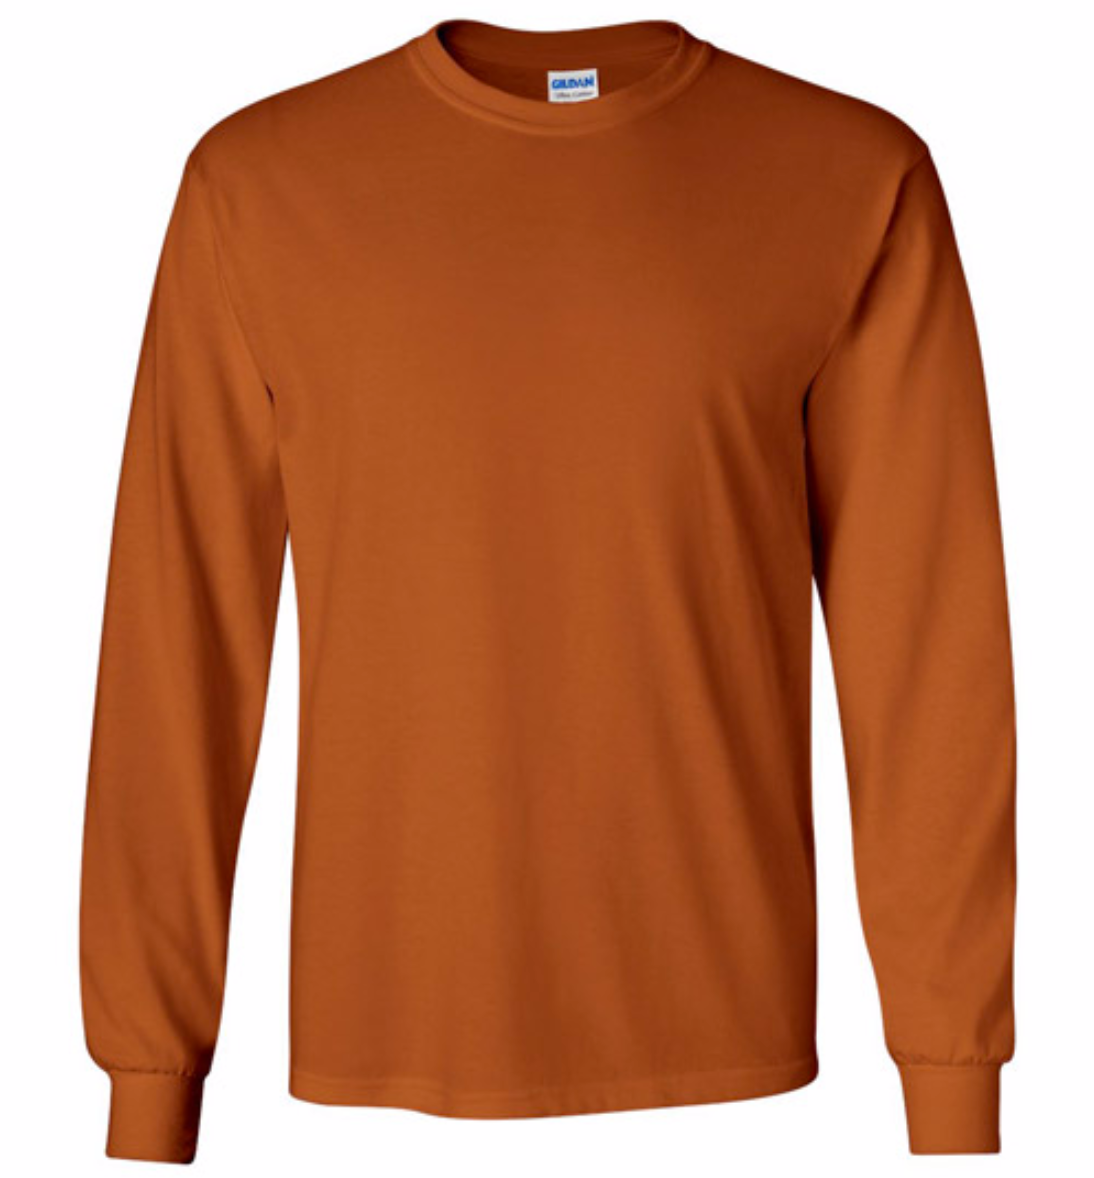 gildan long sleeve shirt